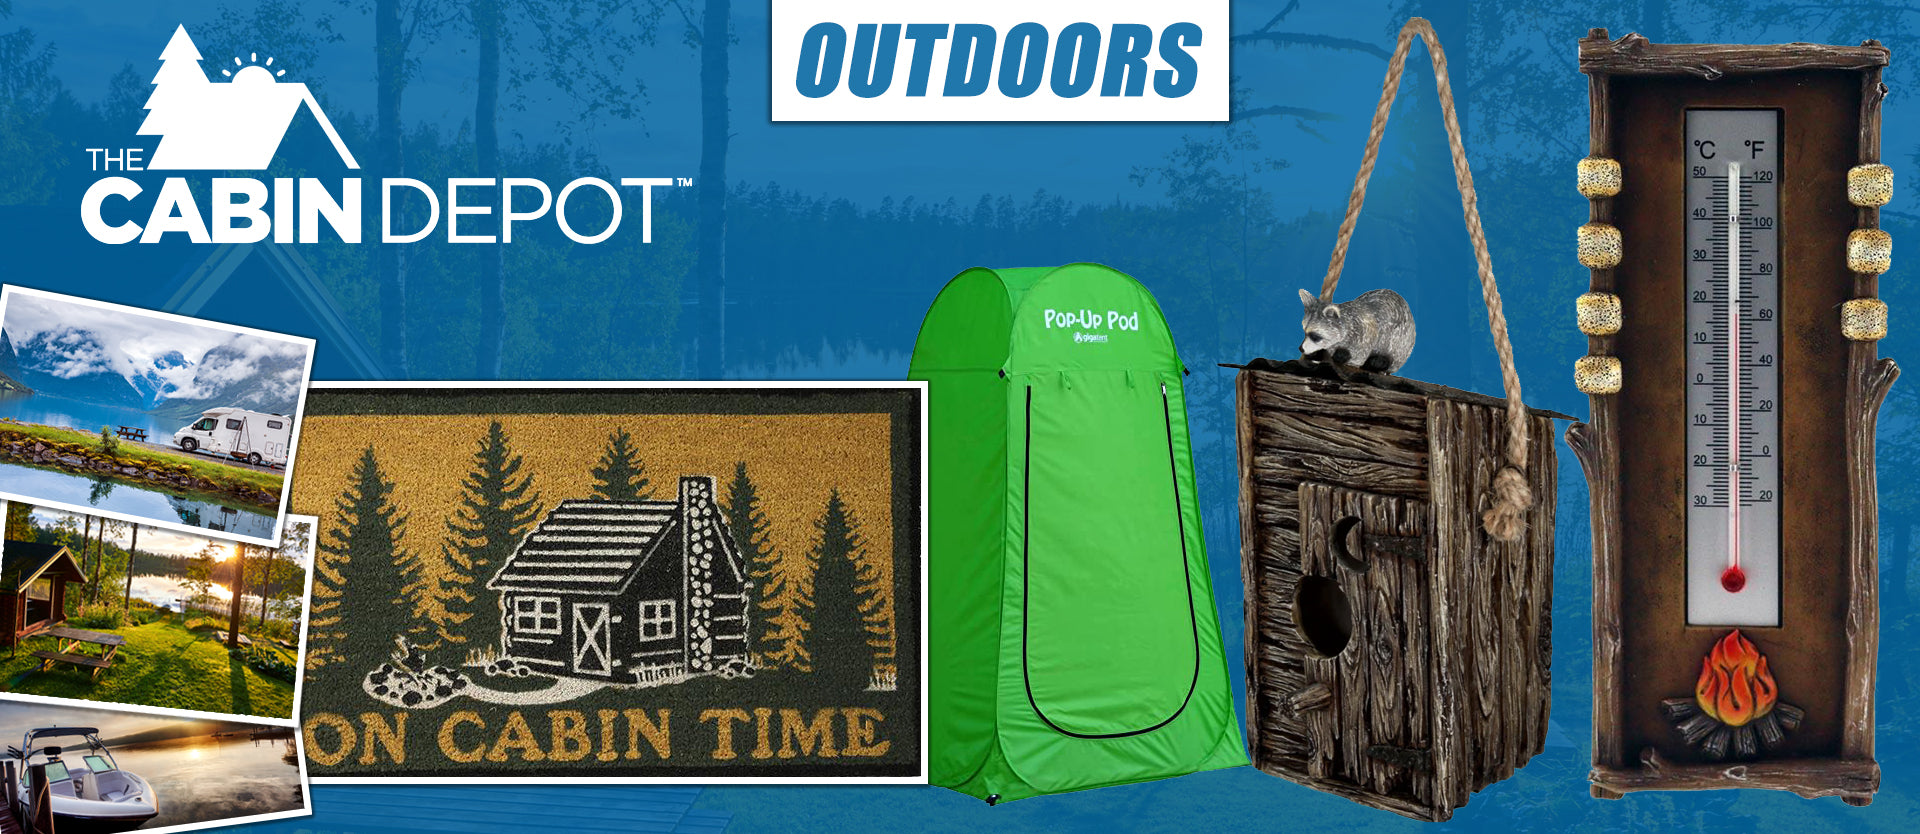 Outdoors Decor Off Grid The Cabin Depot ™ Canada